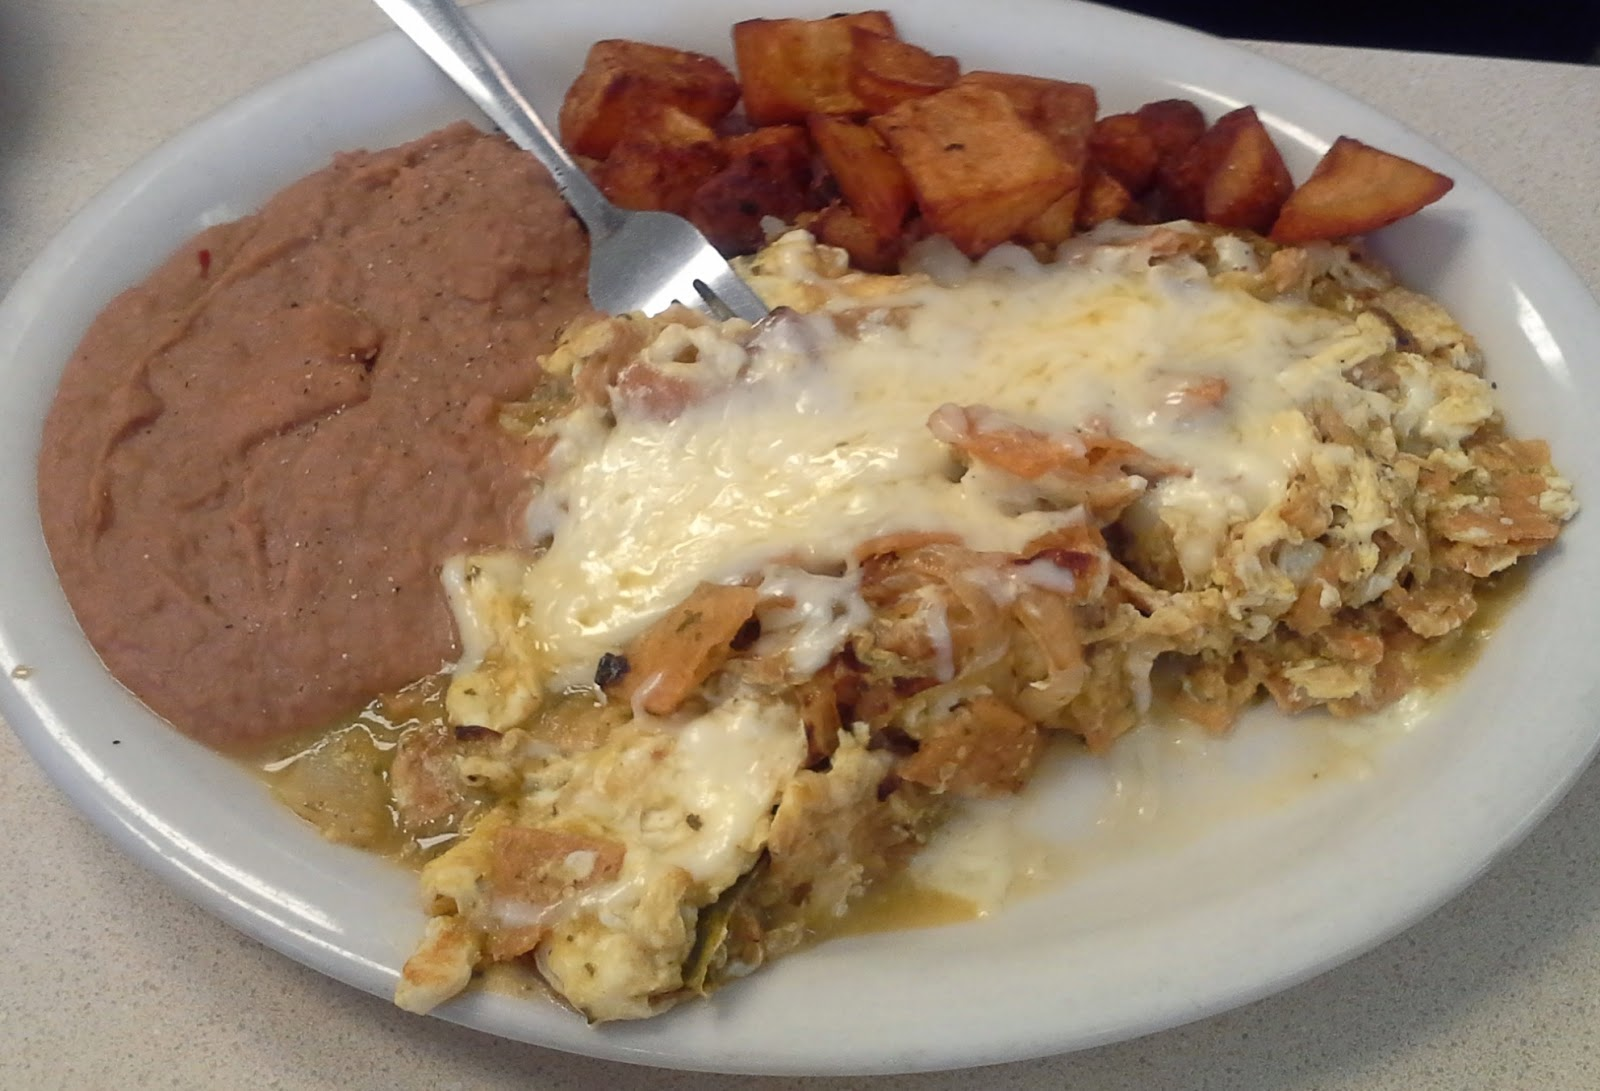 Here's another omelet, sausage, mushroom, and white cheese. This place ...